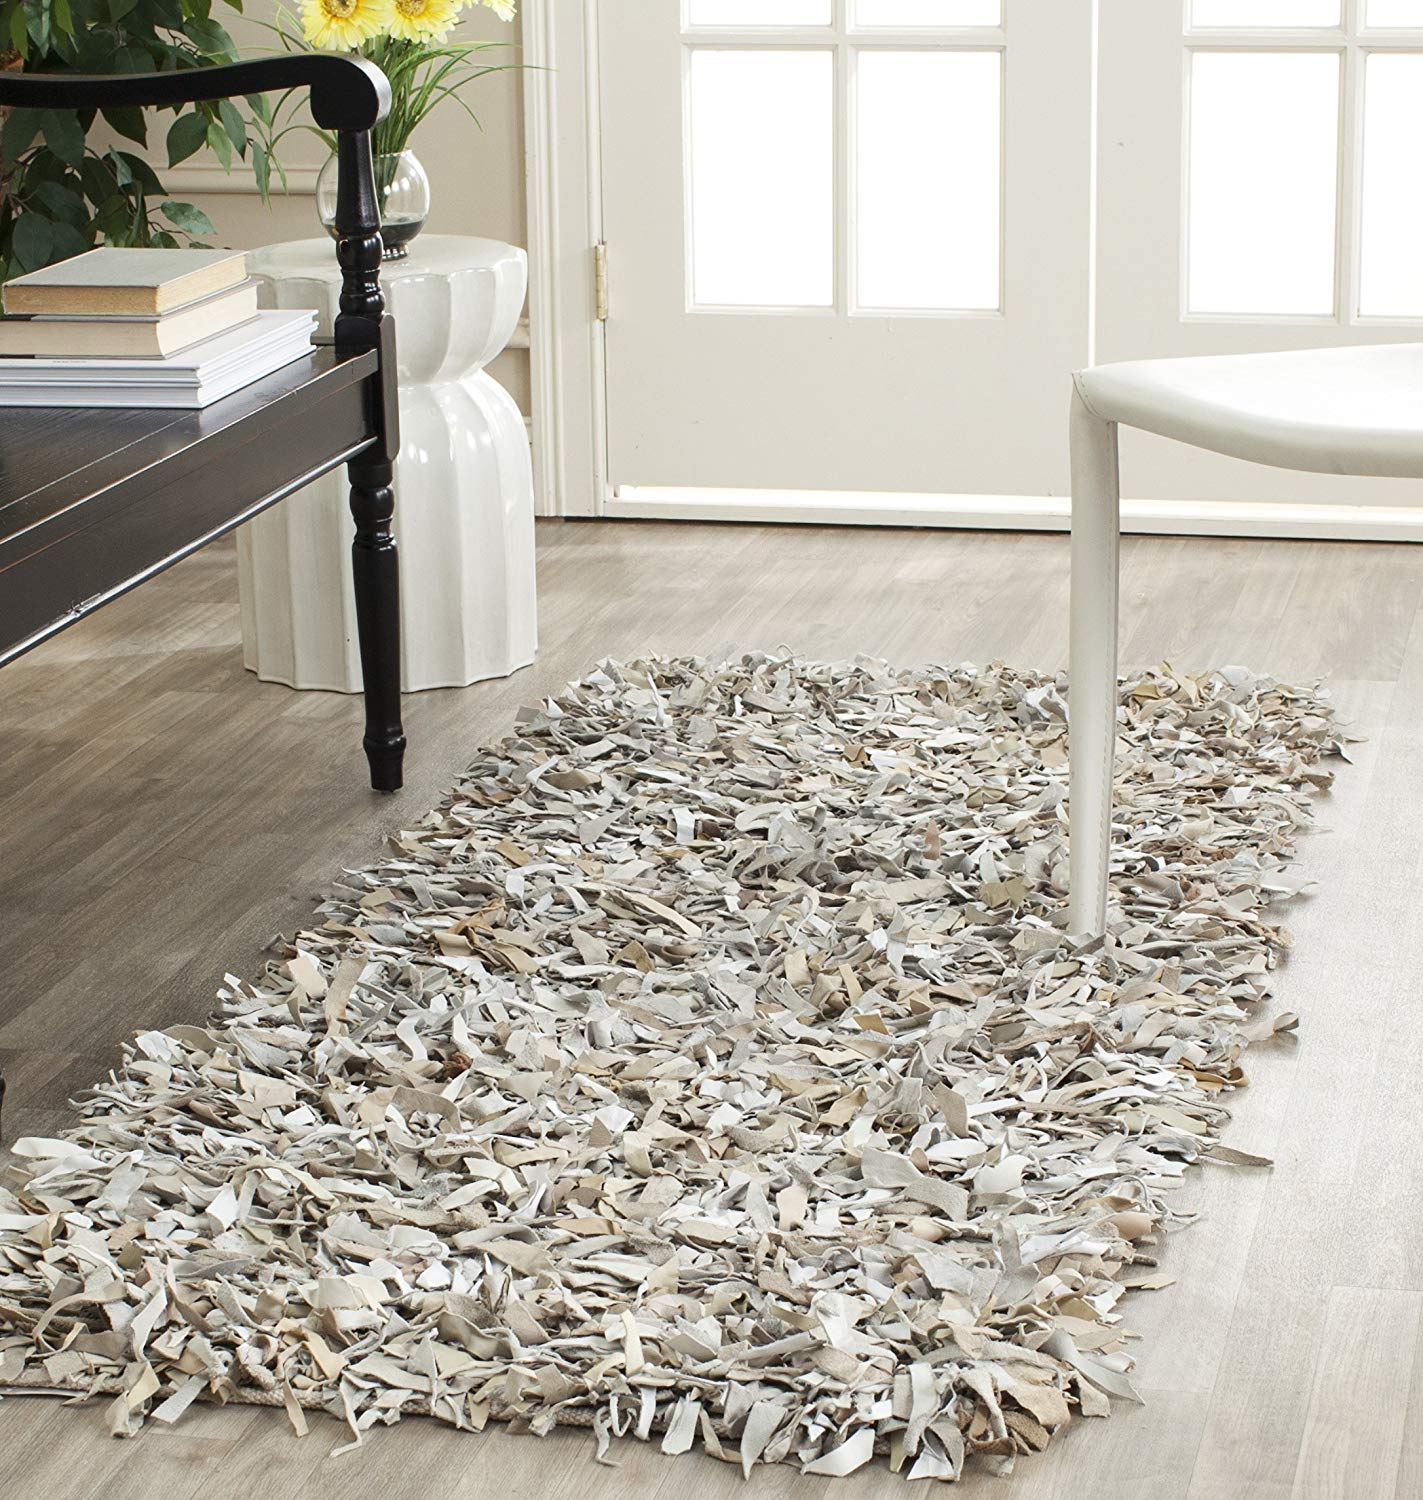 leather rug amazon.com: safavieh leather shag collection lsg511c hand woven white  leather runner (2u00273 GZWRQWN